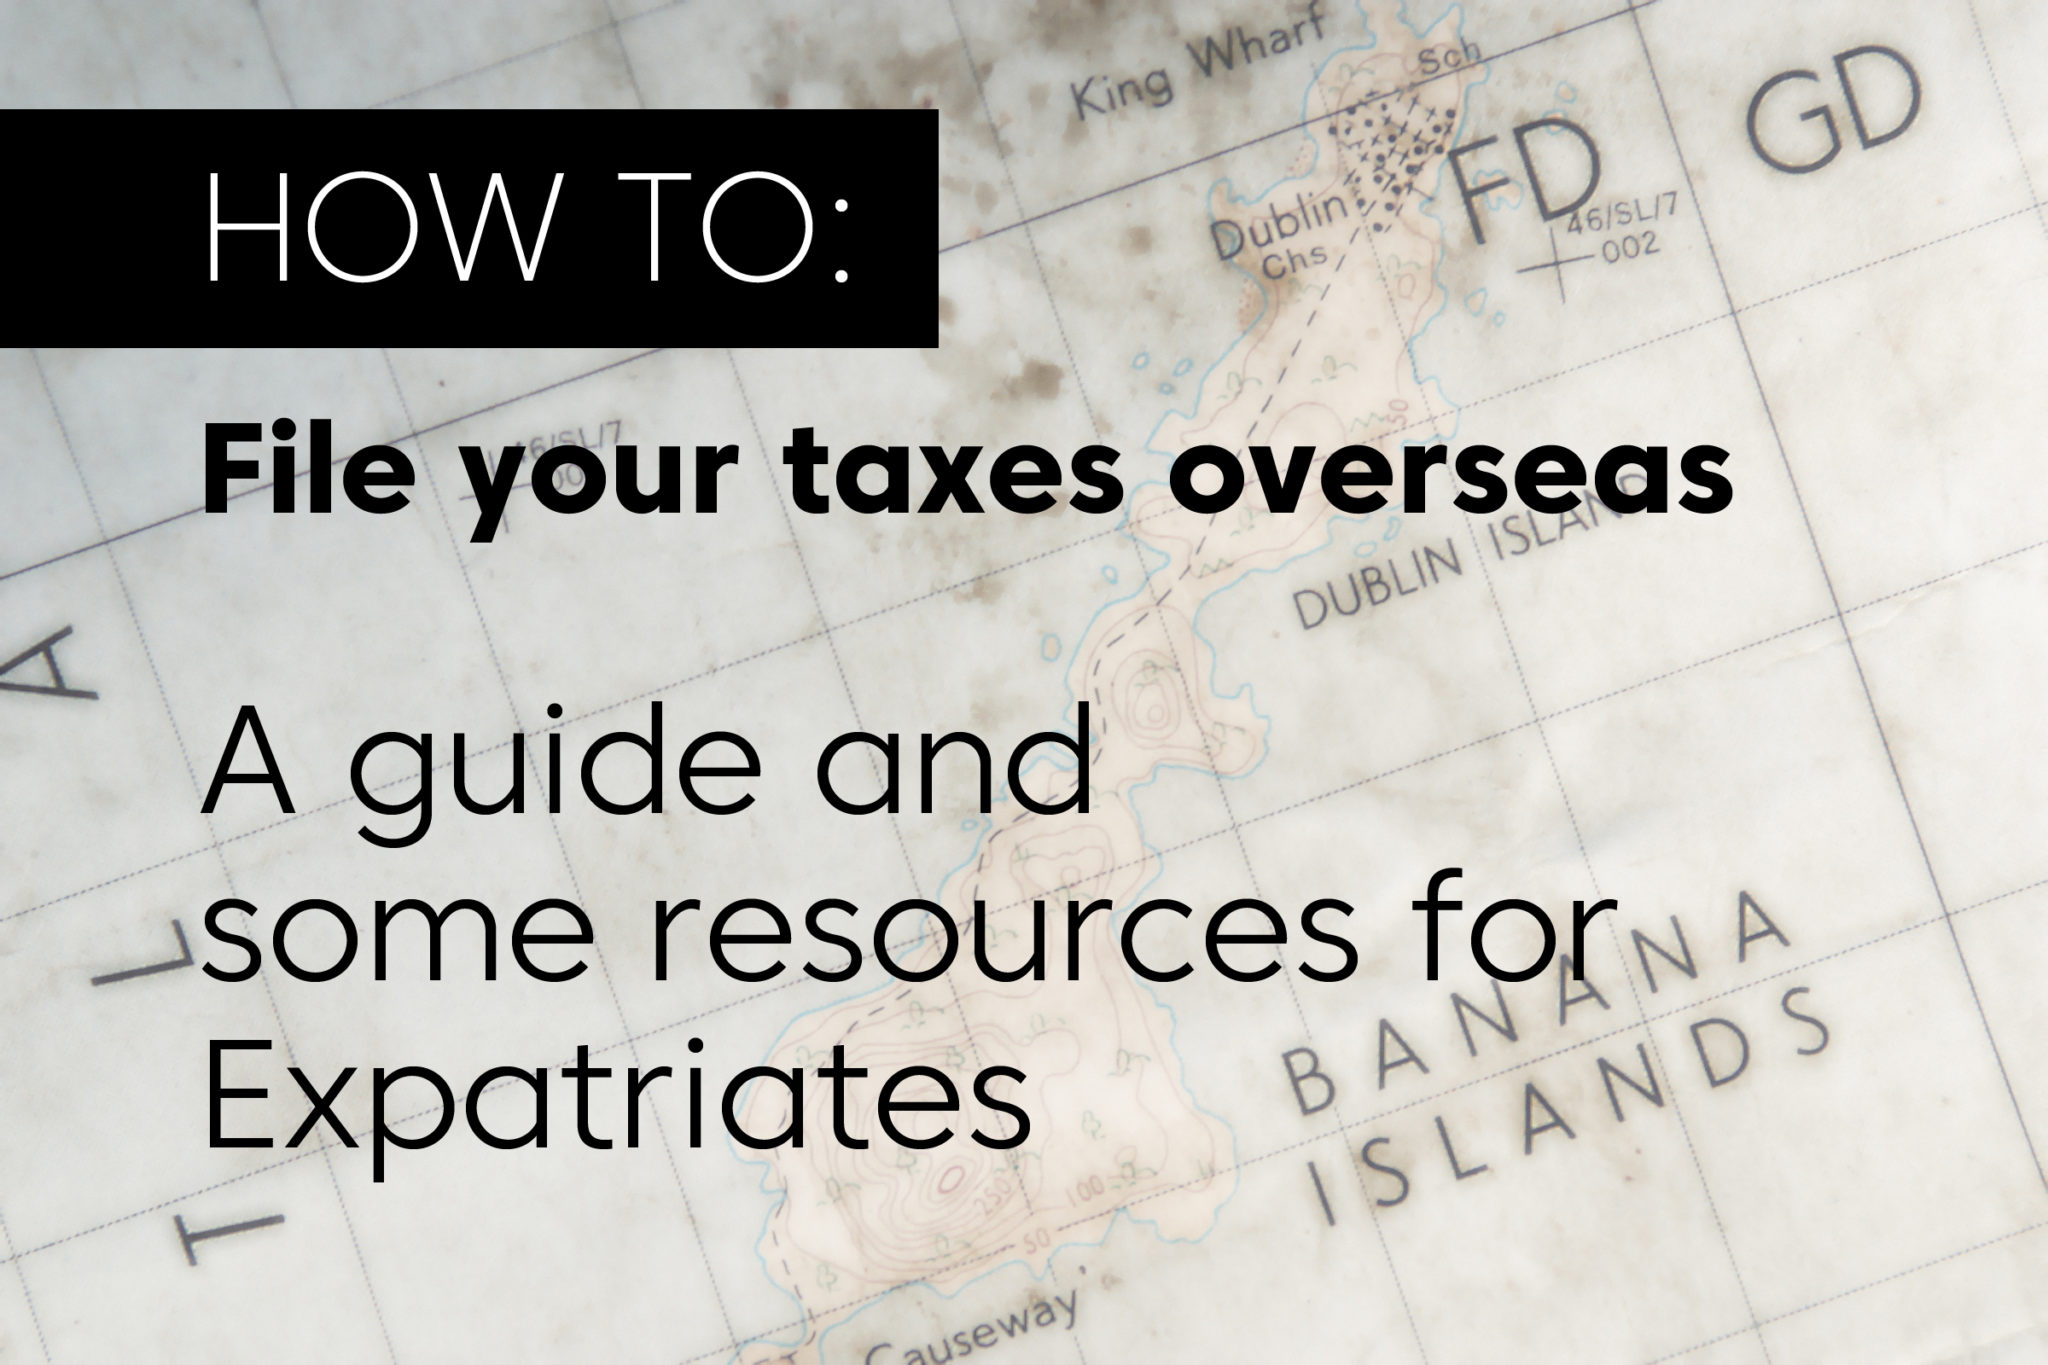 A how-to guide on filing taxes overseas